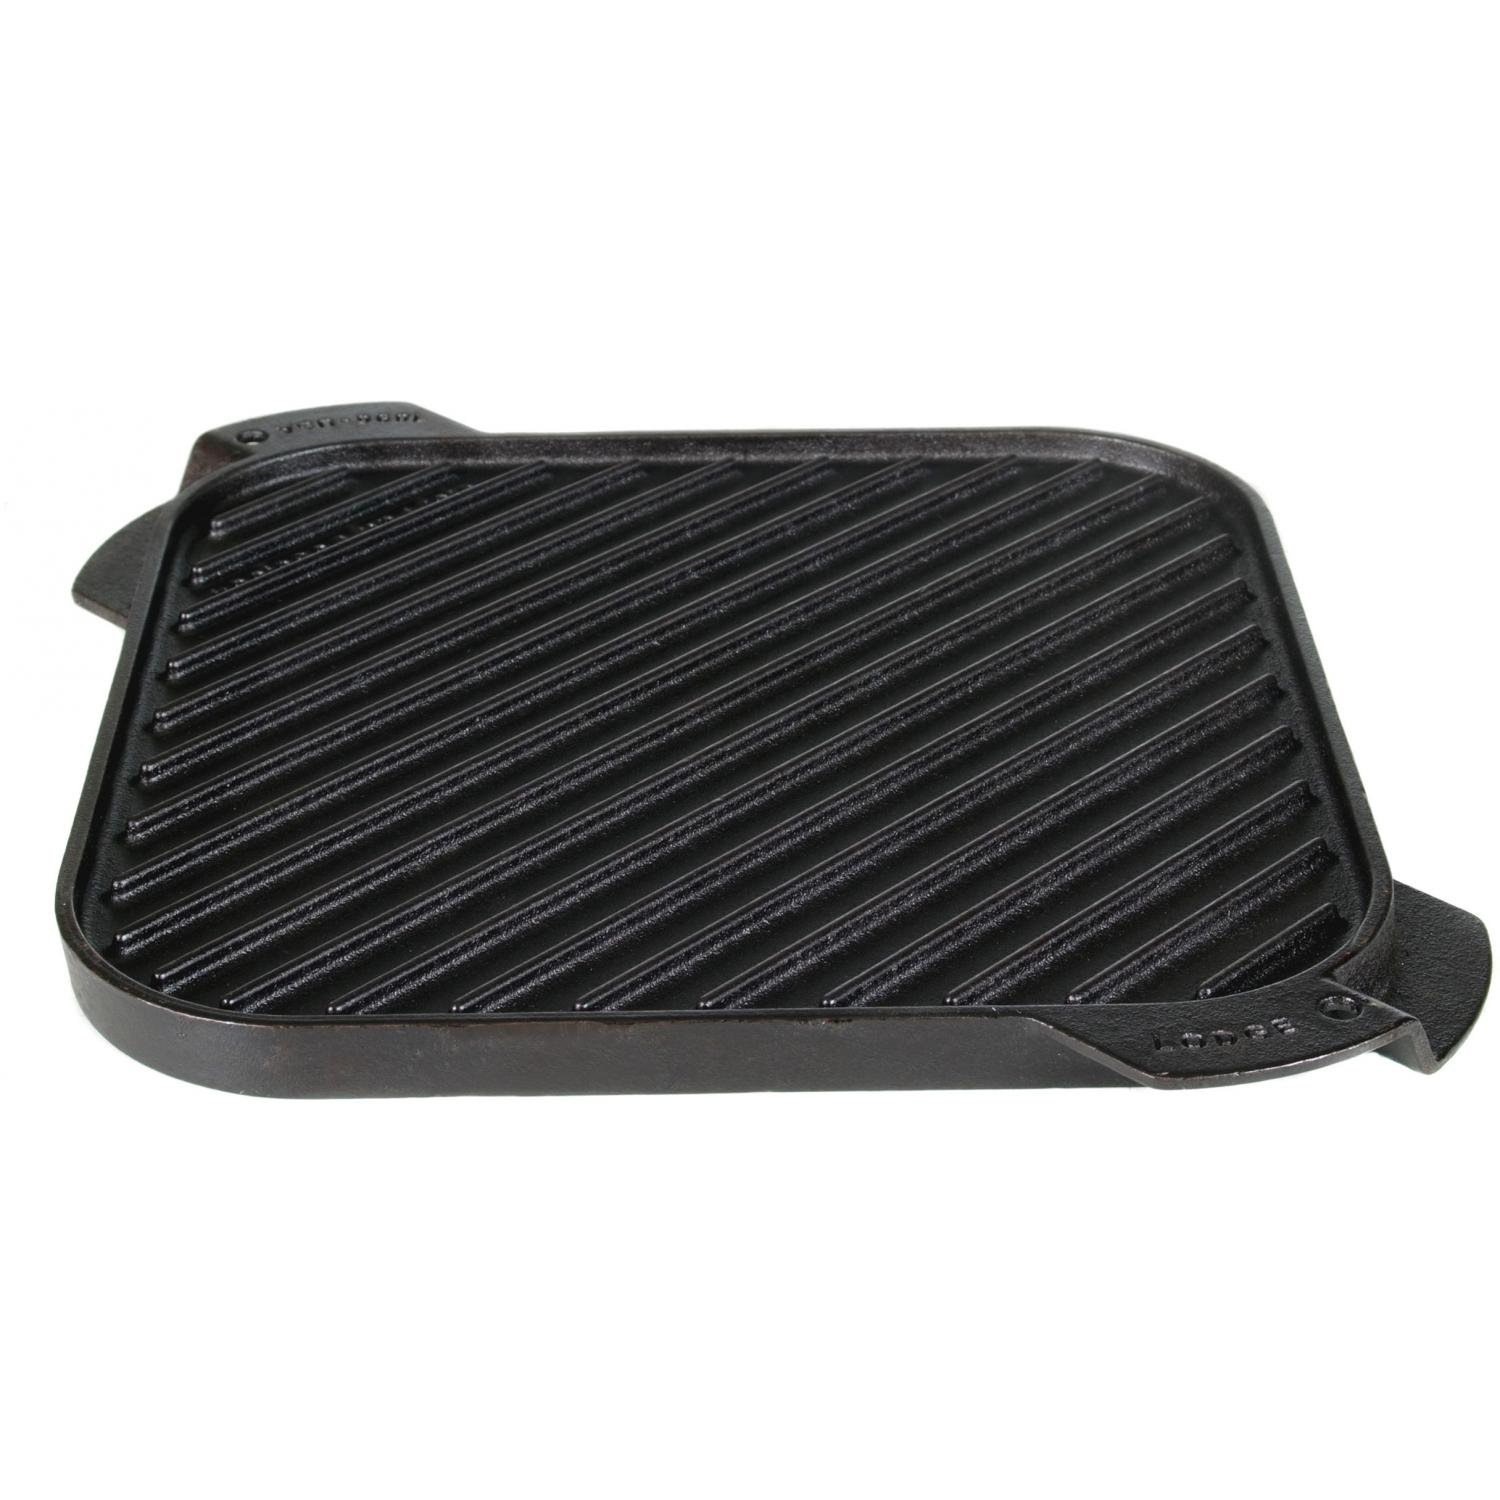 Lodge 10.5-Inch Logic Single Burner Reversible Cast Iron Griddle - LSRG3 1666234